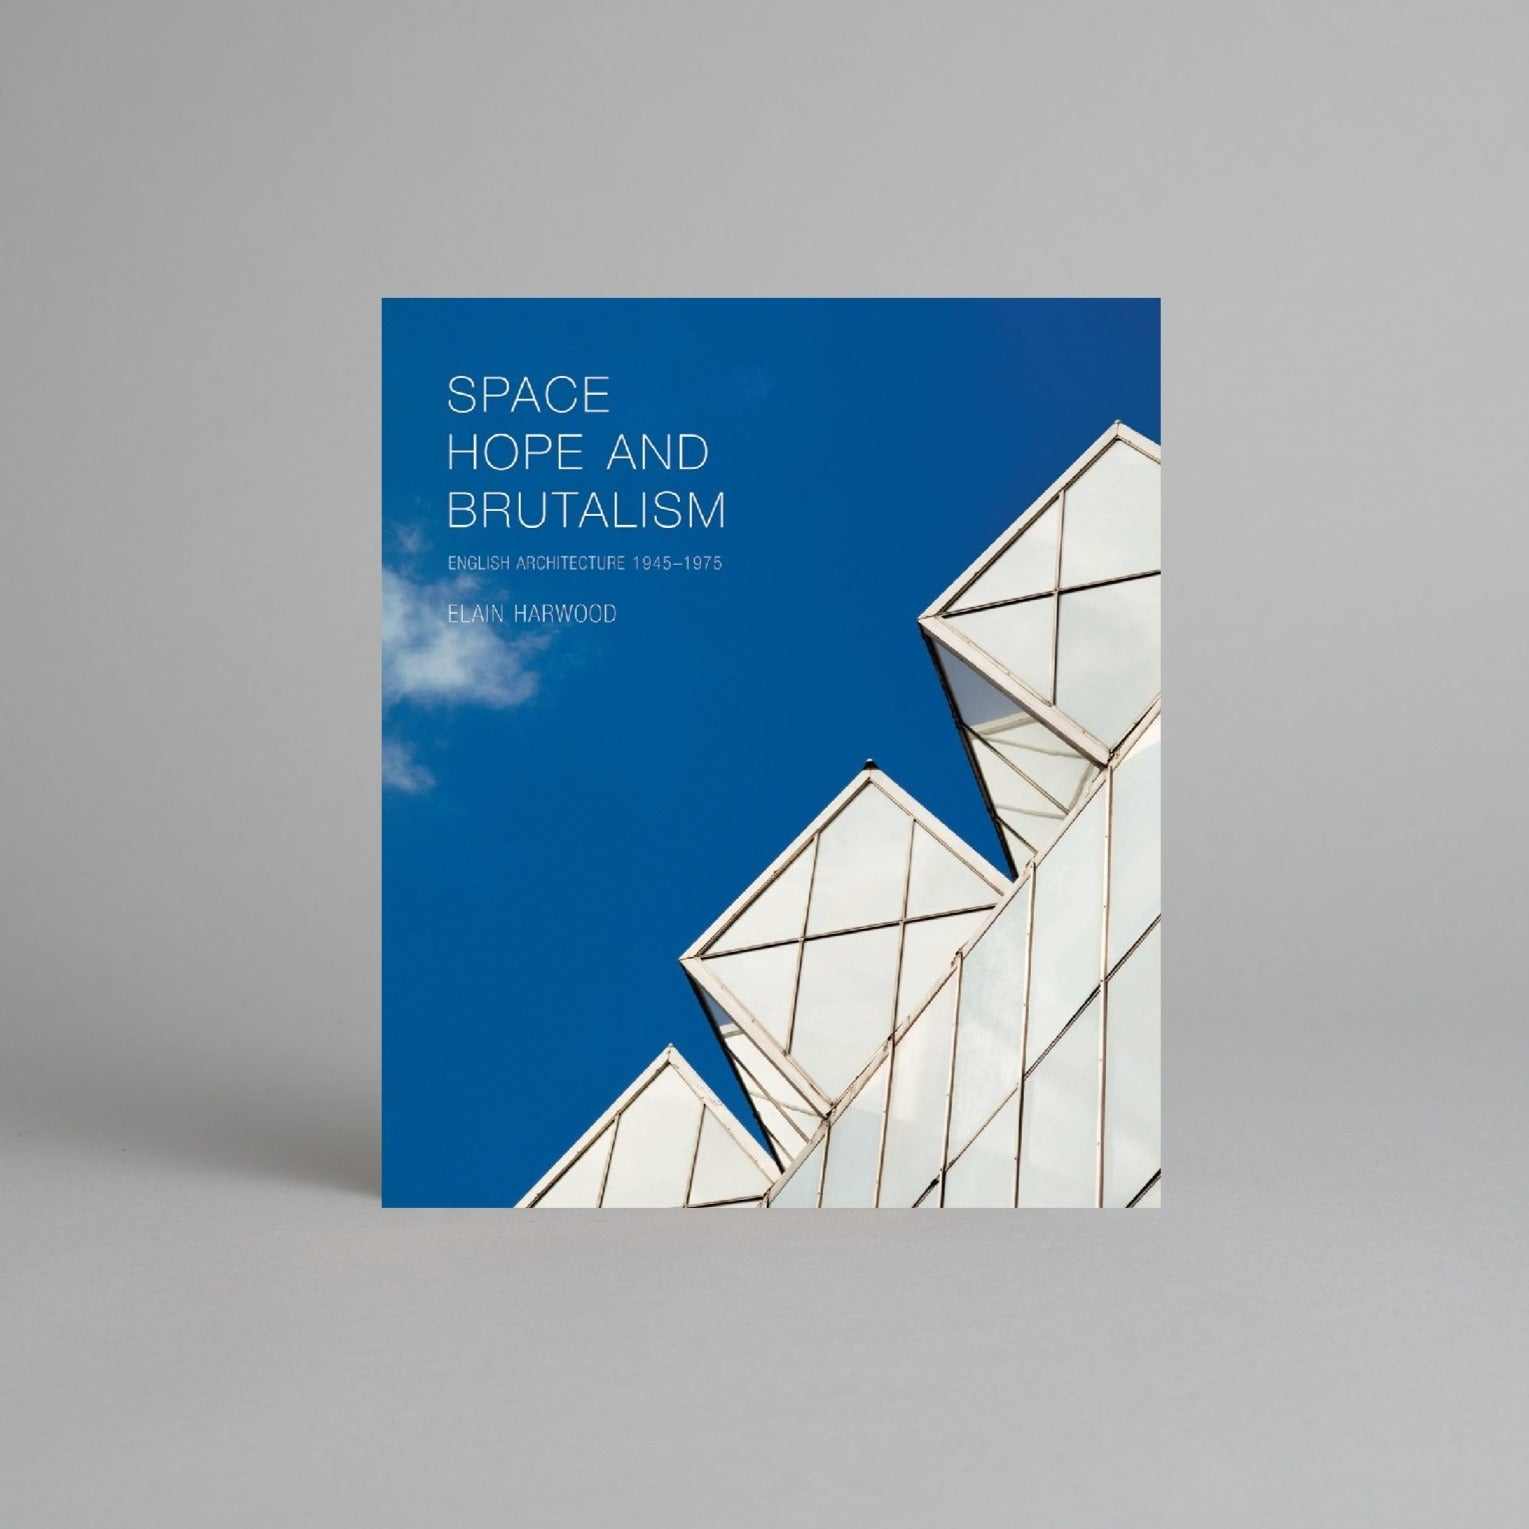 Space, Hope, and Brutalism: English Architecture, 1945-1975 by Elain Harwood